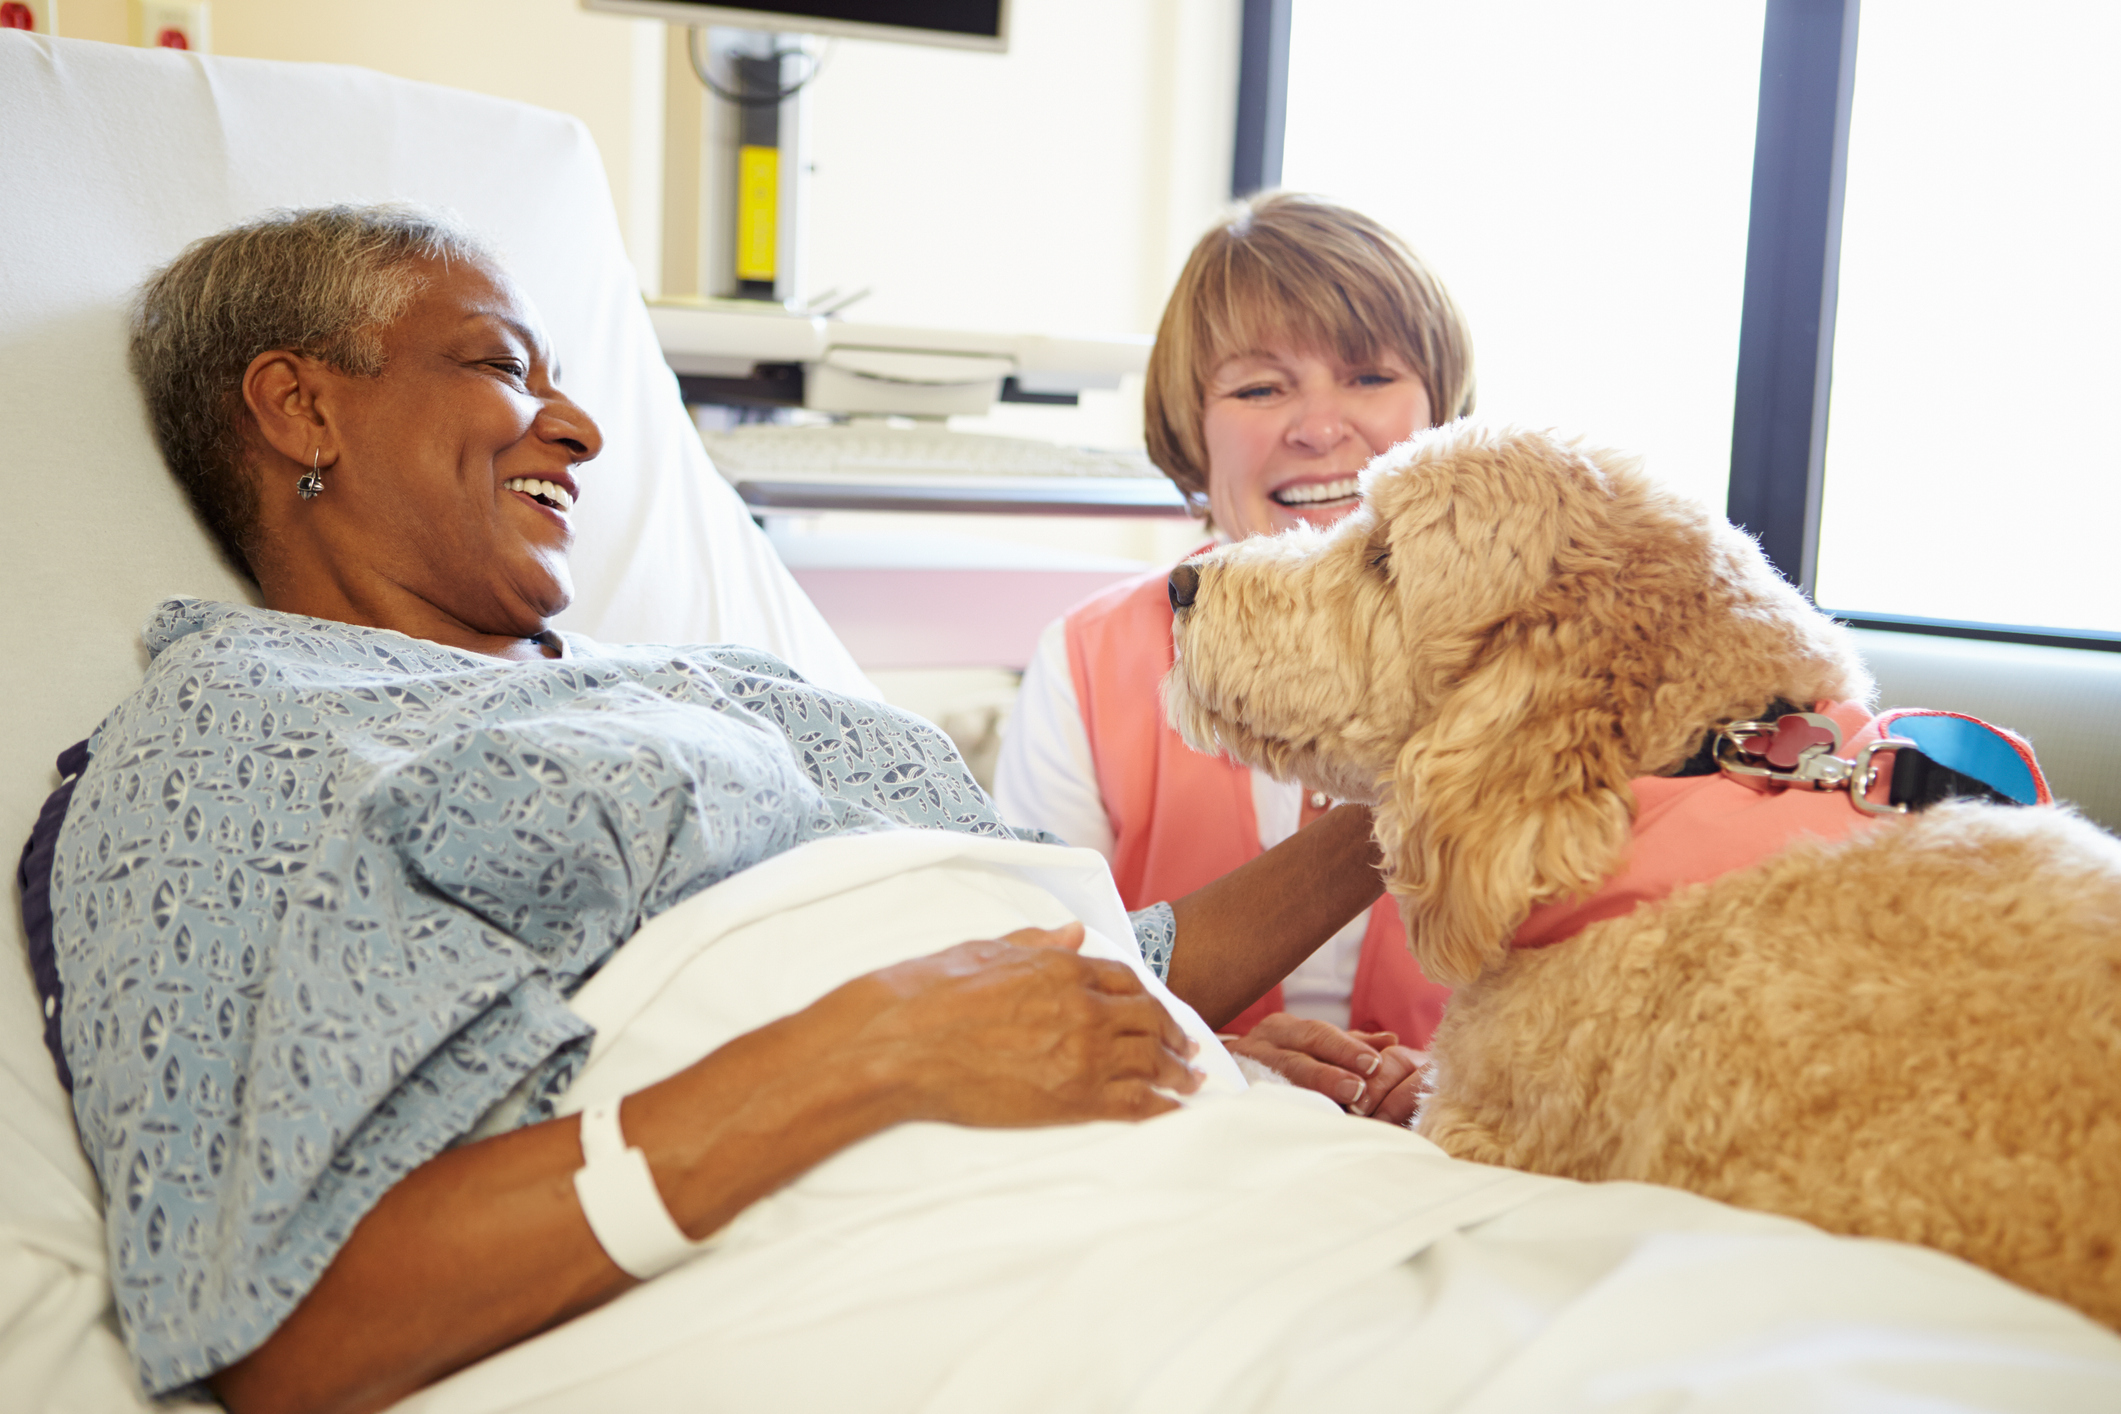 Therapy Animals - We have occasional visits from furry friends to engage our residents and promote emotional health.